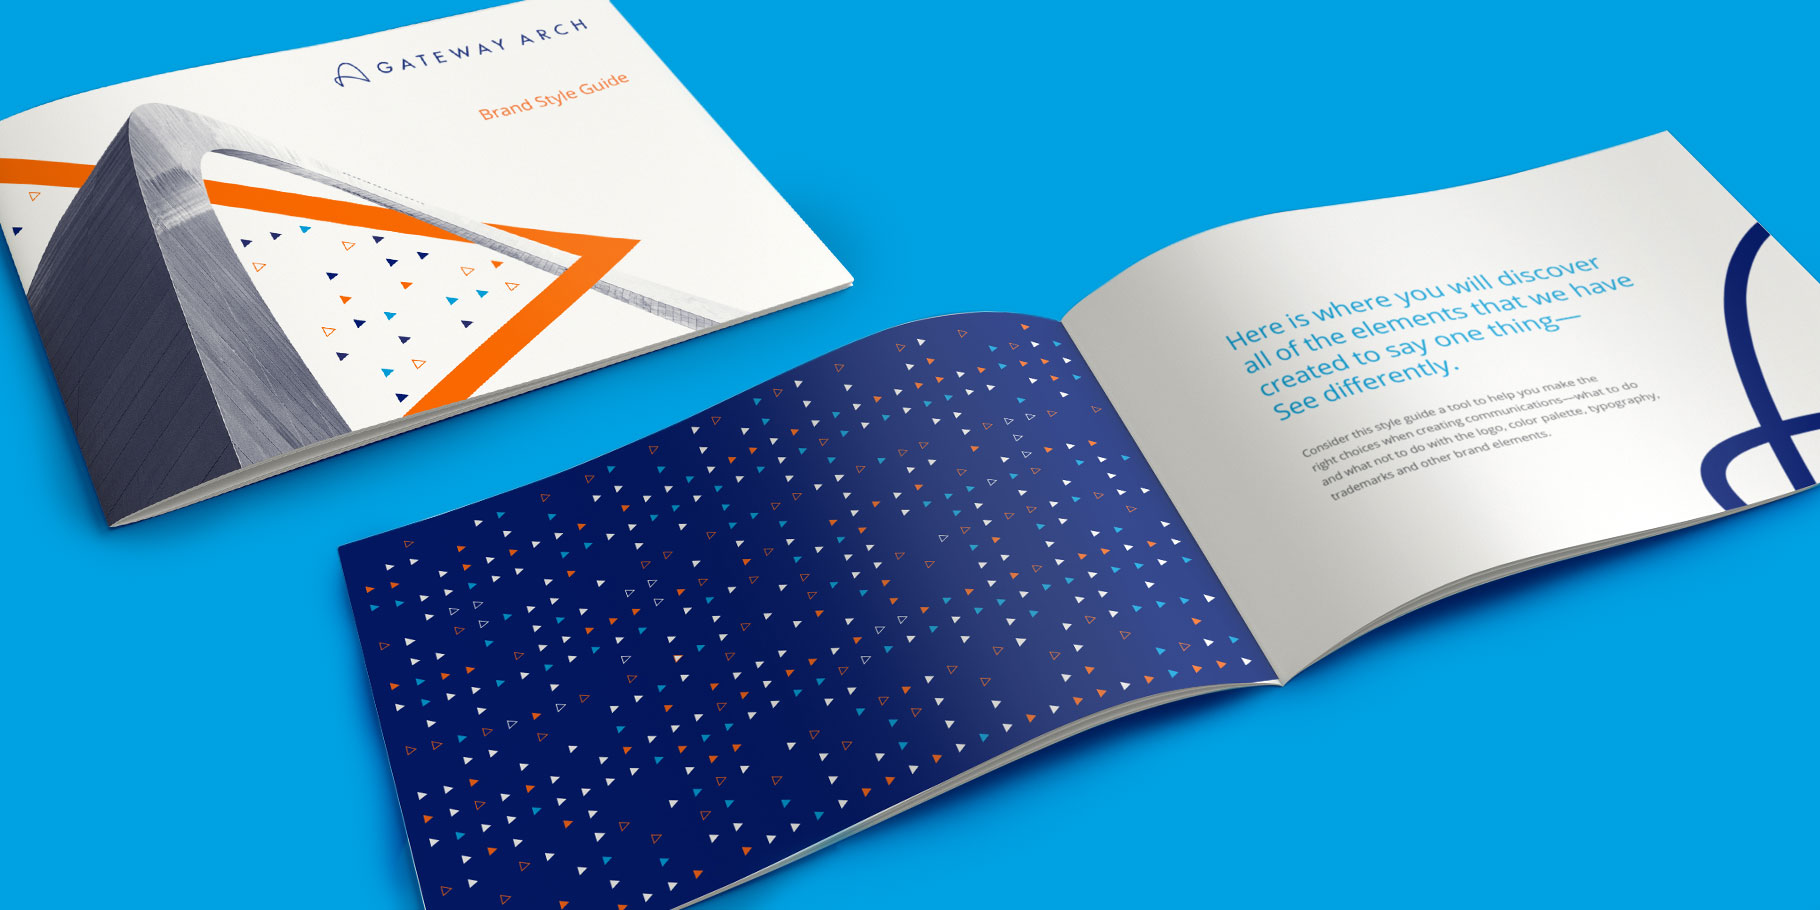 Gateway Arch brand style guide cover and interior sitting on blue